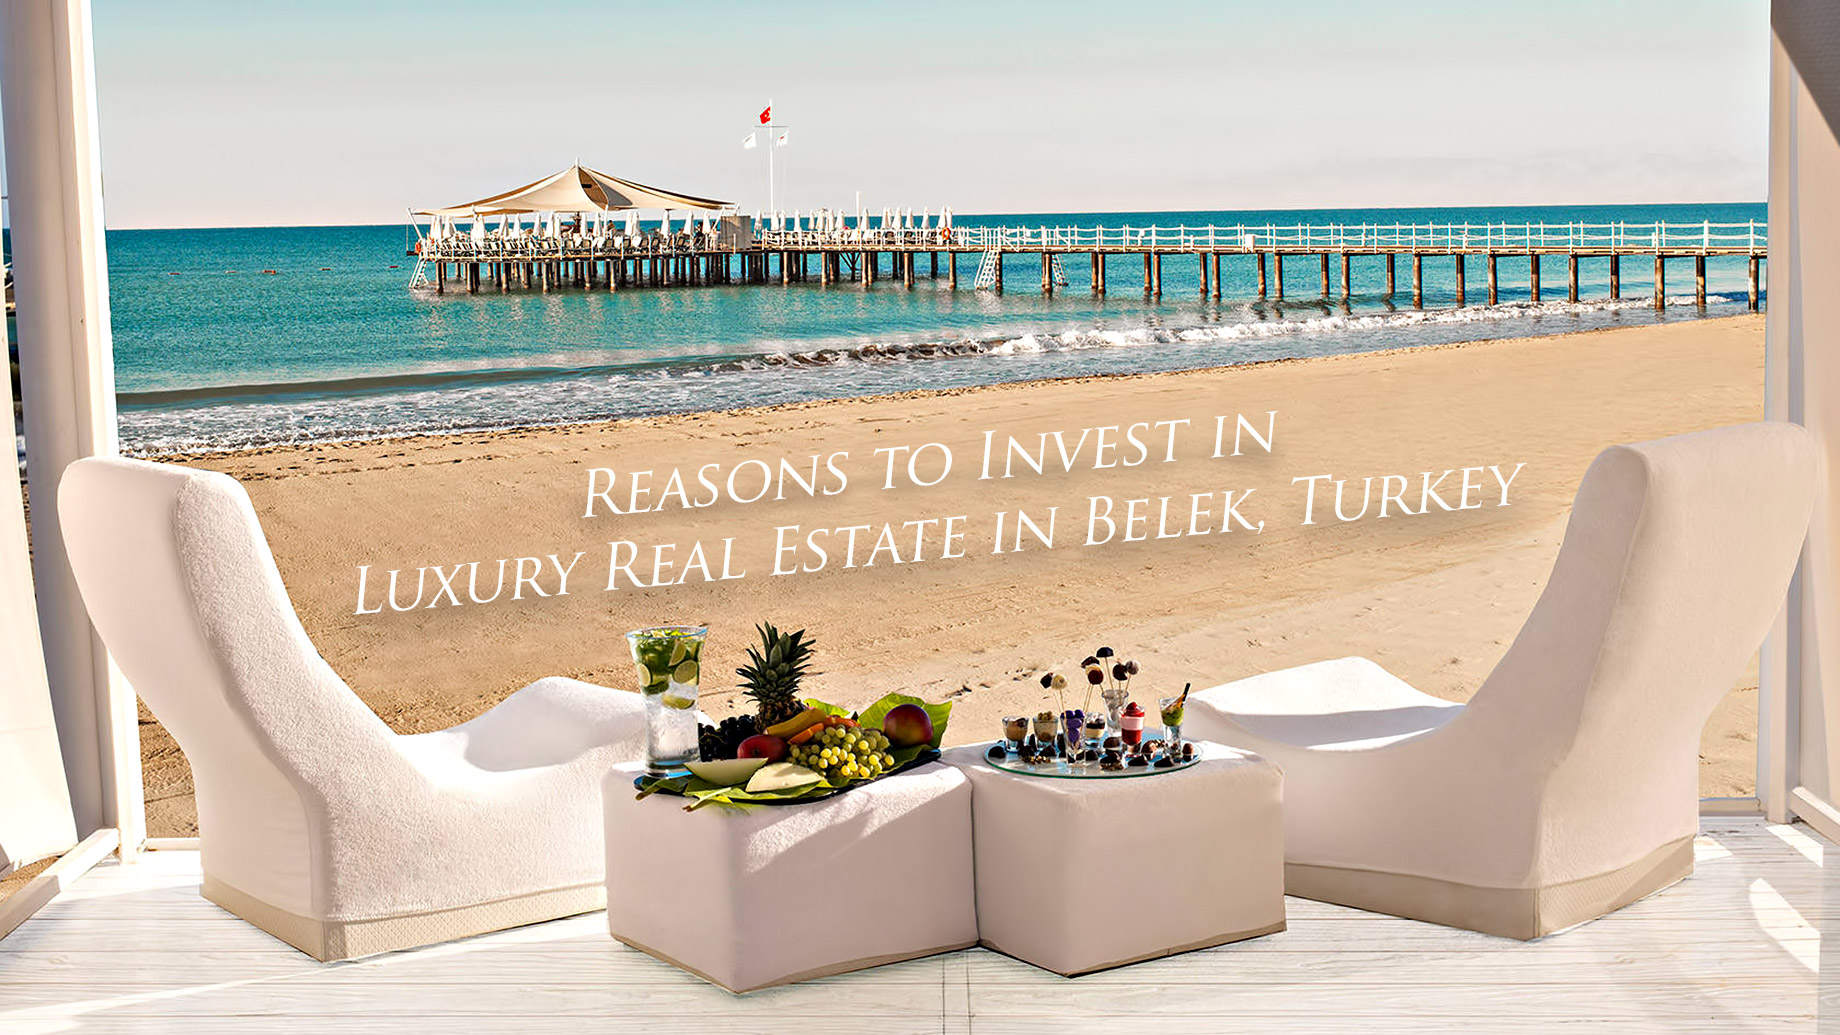 Reasons to Invest in Luxury Real Estate in Belek, Turkey